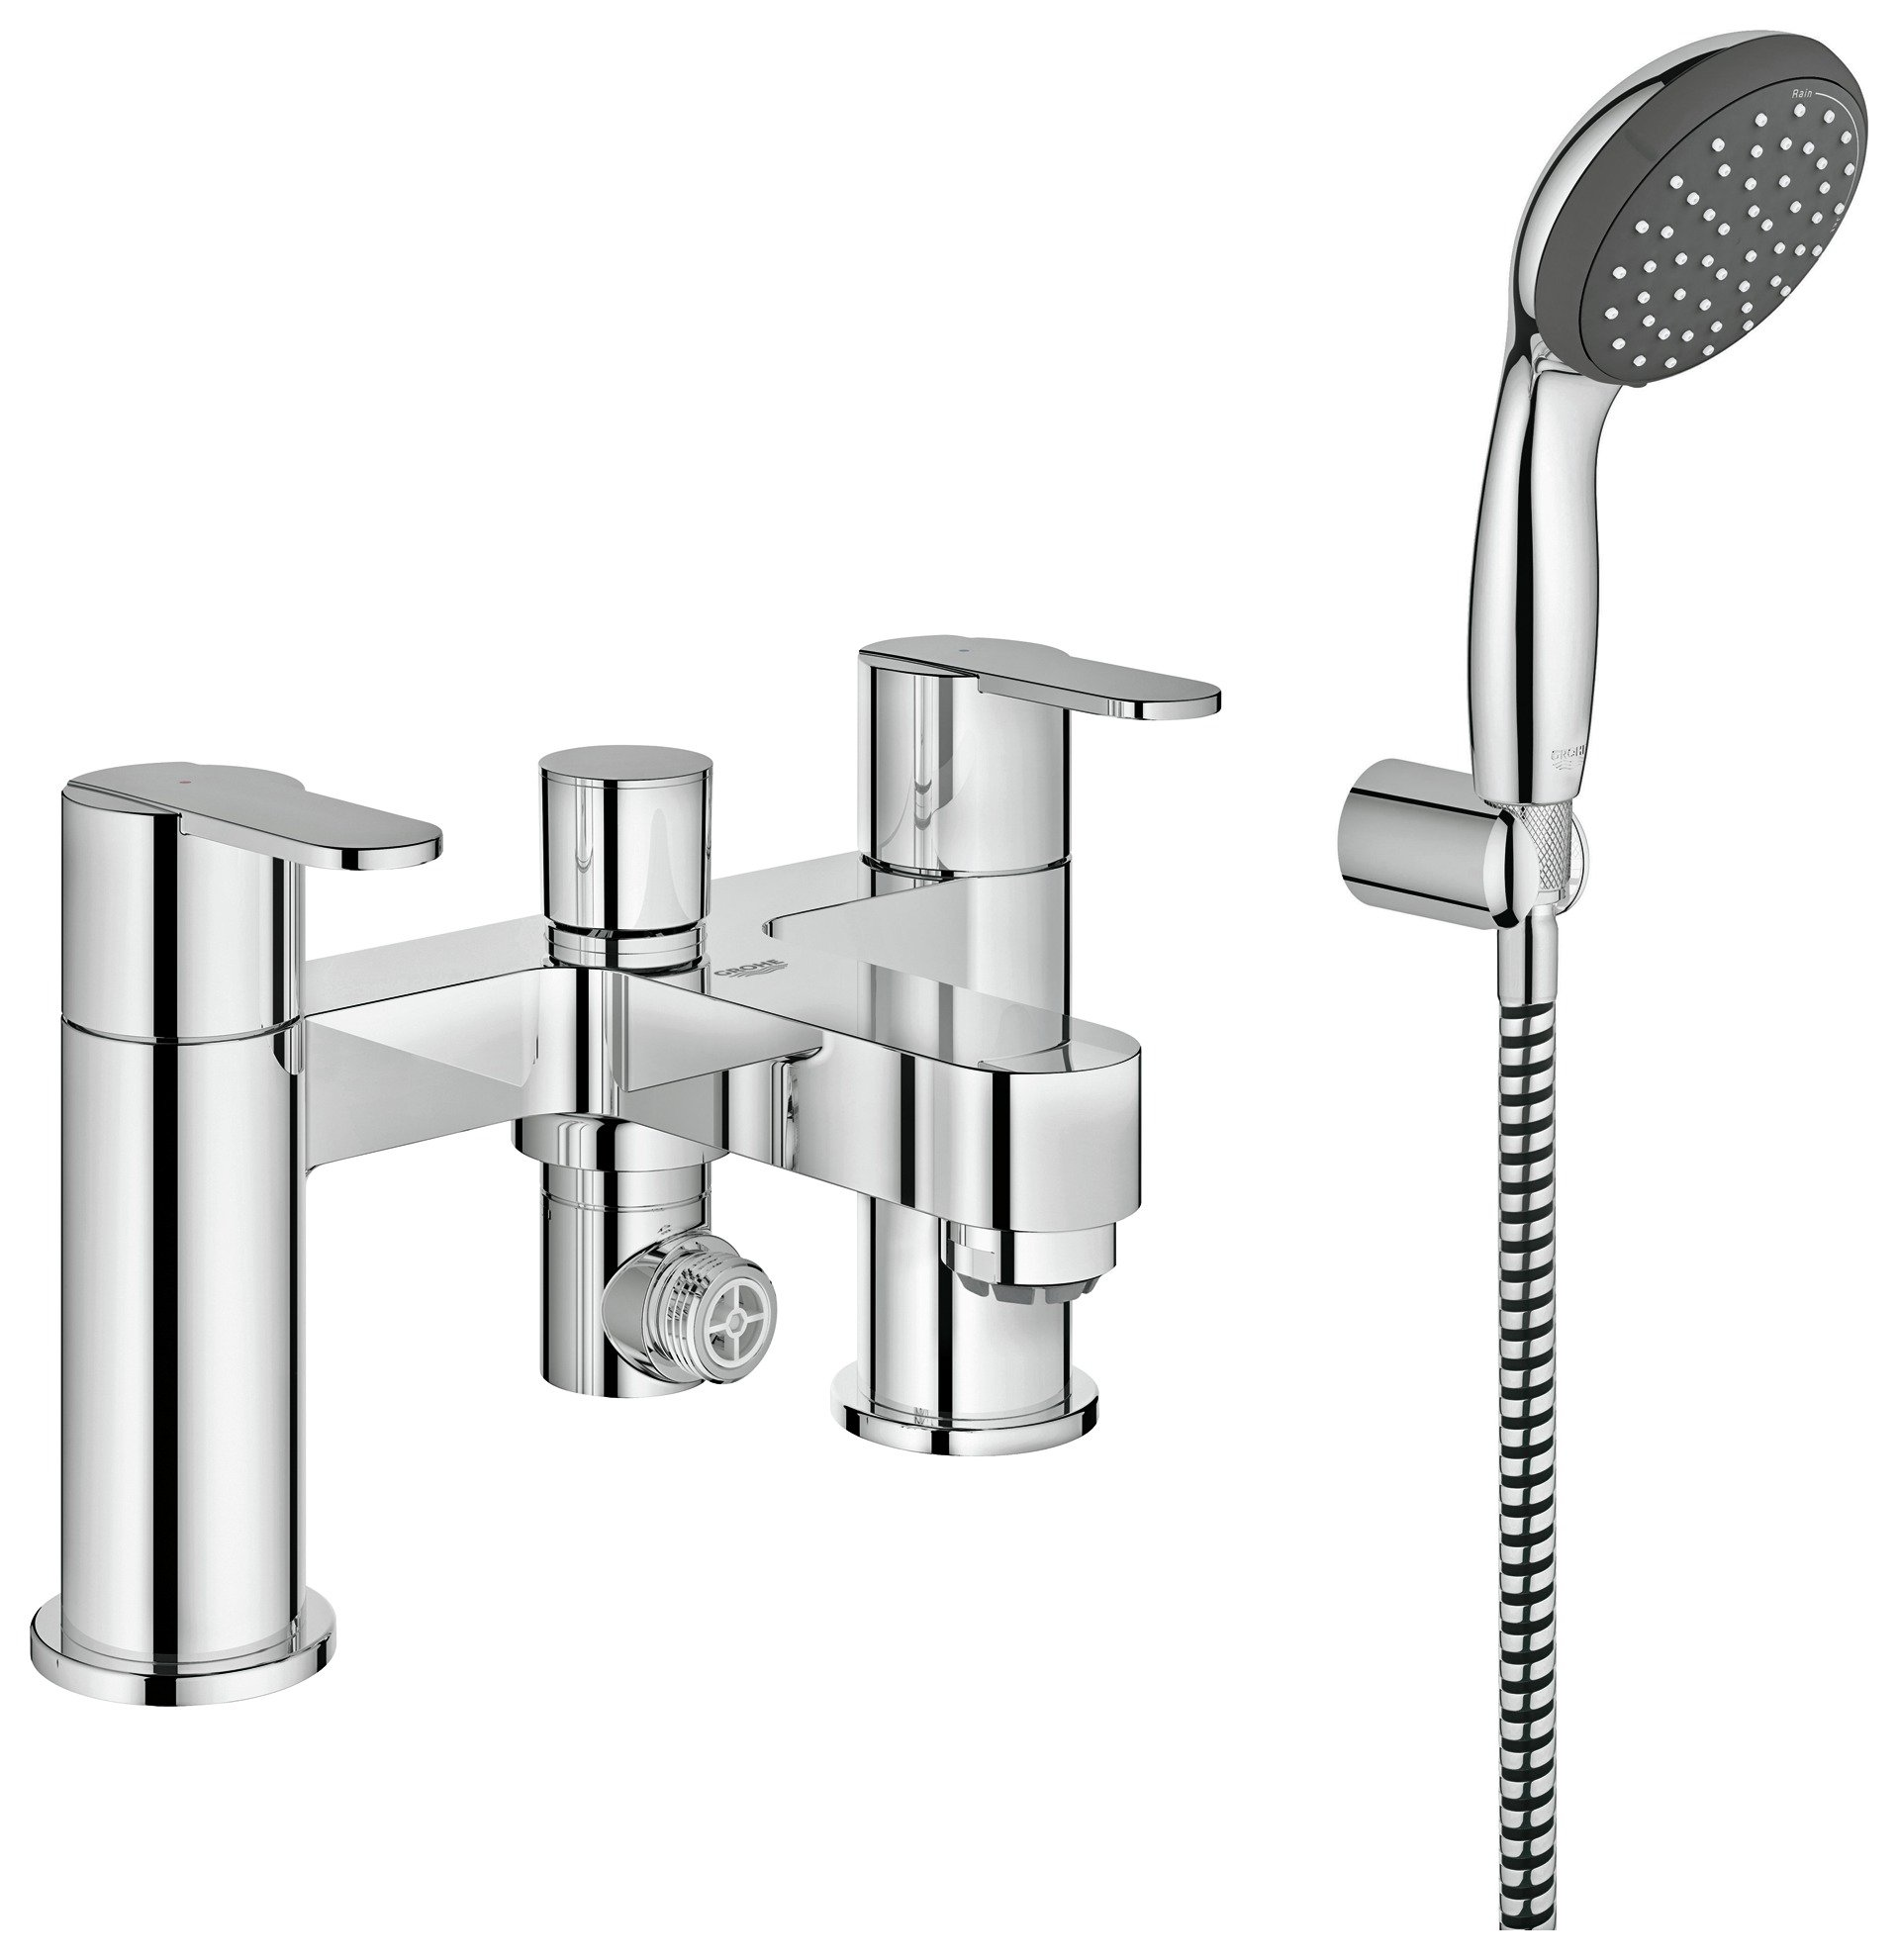 grohe get bath and shower mixer set gay times uk. Black Bedroom Furniture Sets. Home Design Ideas